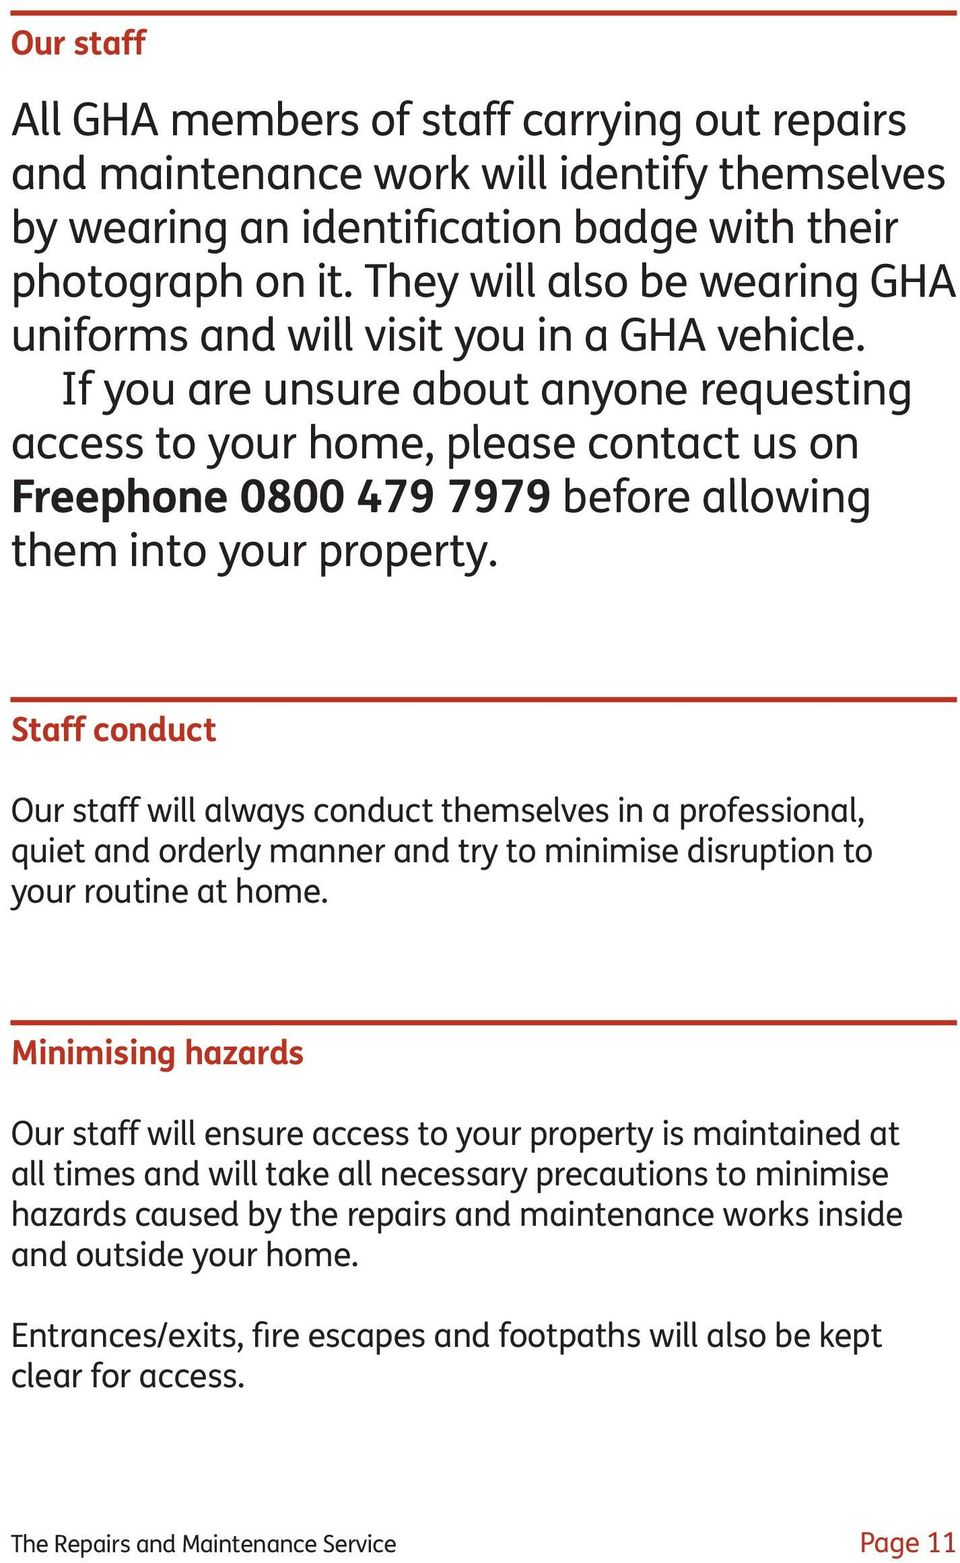 If you are unsure about anyone requesting access to your home, please contact us on Freephone 0800 479 7979 before allowing them into your property.